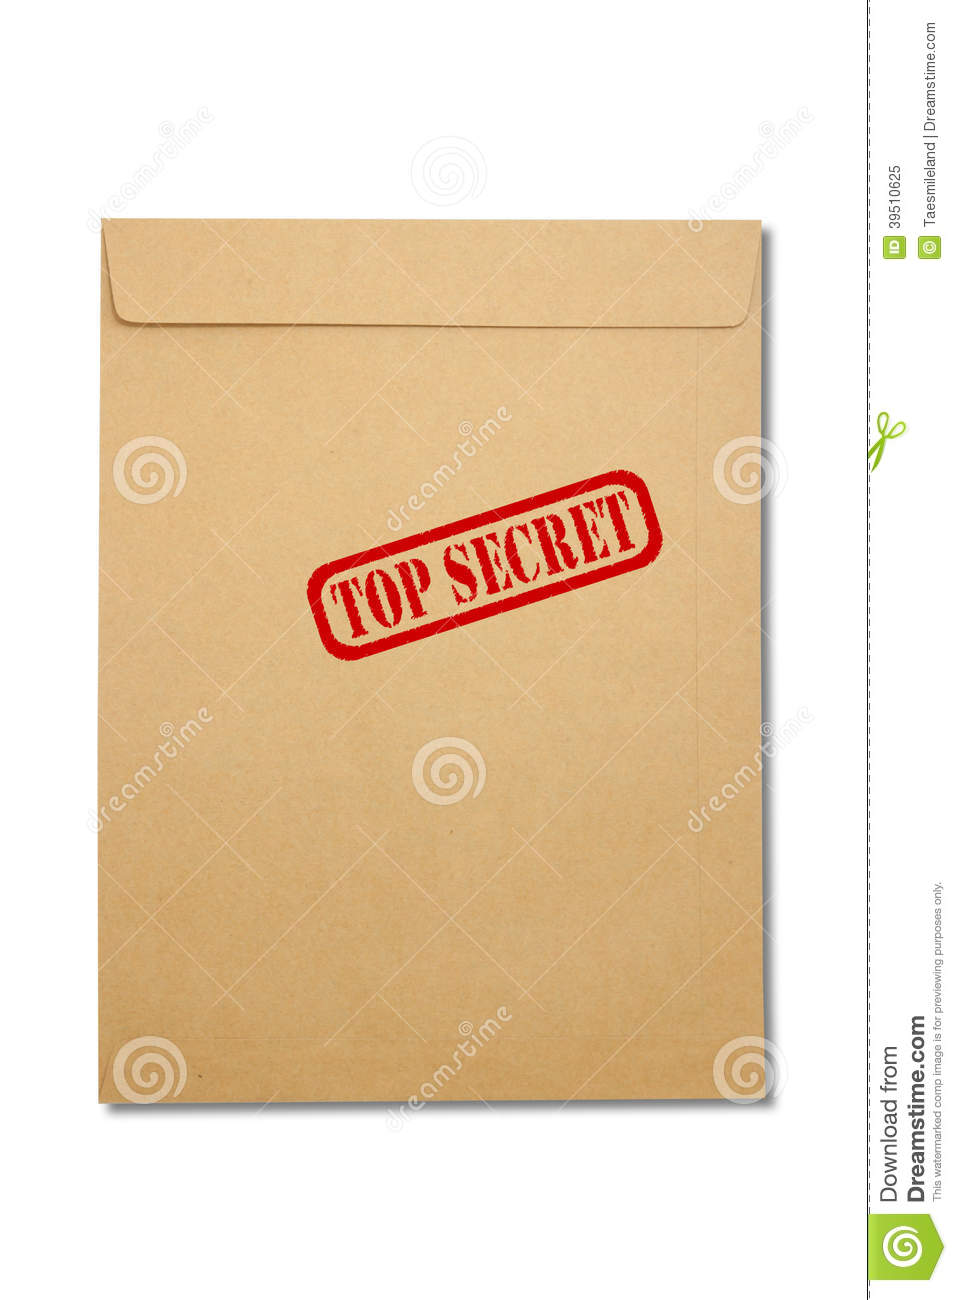 Paper Envelope isolated